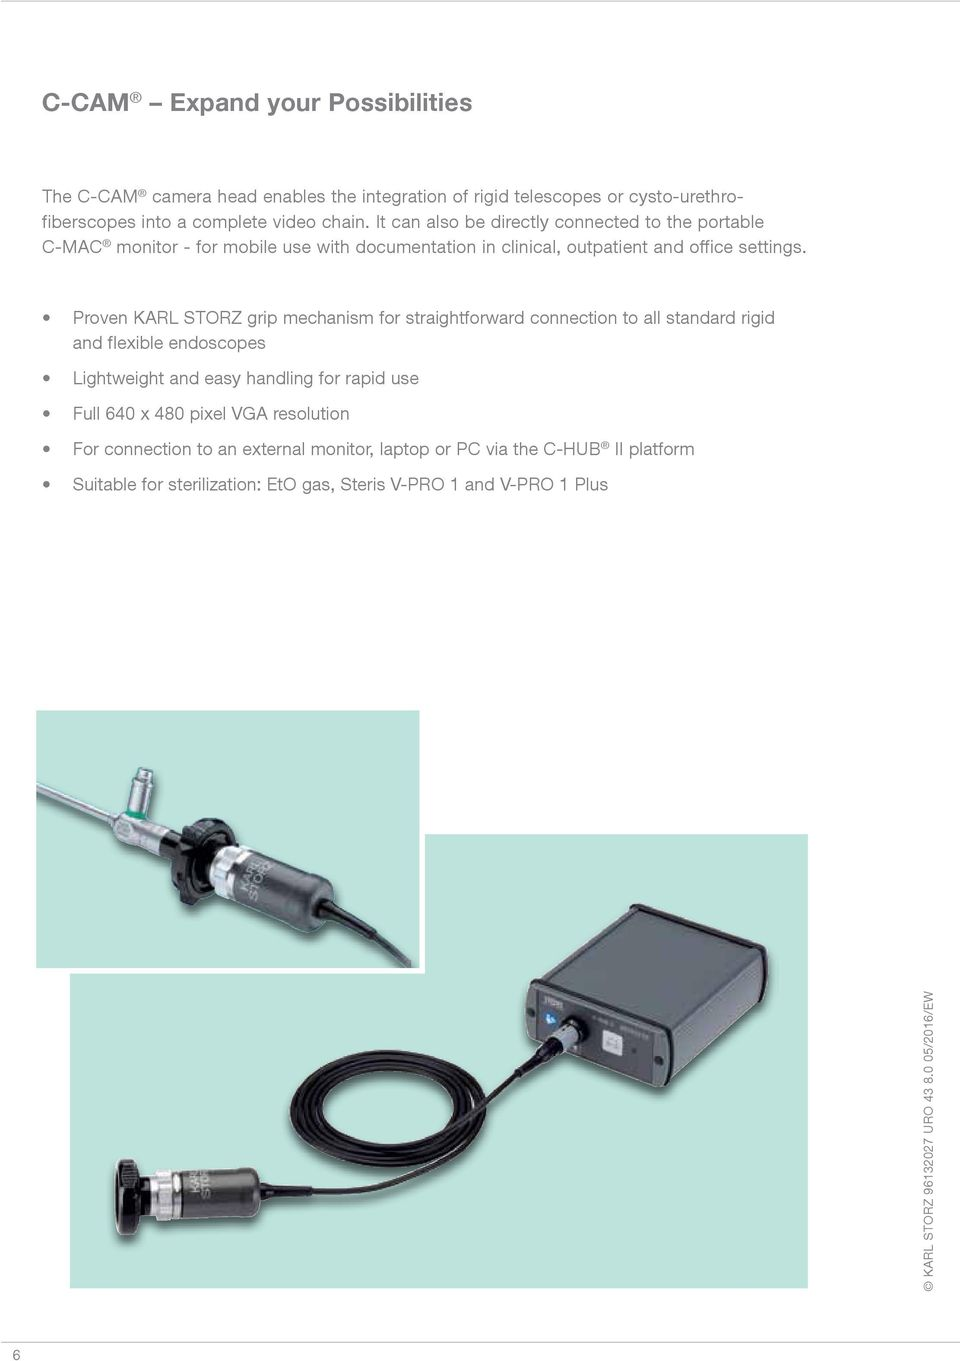 Mobile Video Cystoscopy from KARL STORZ - PDF